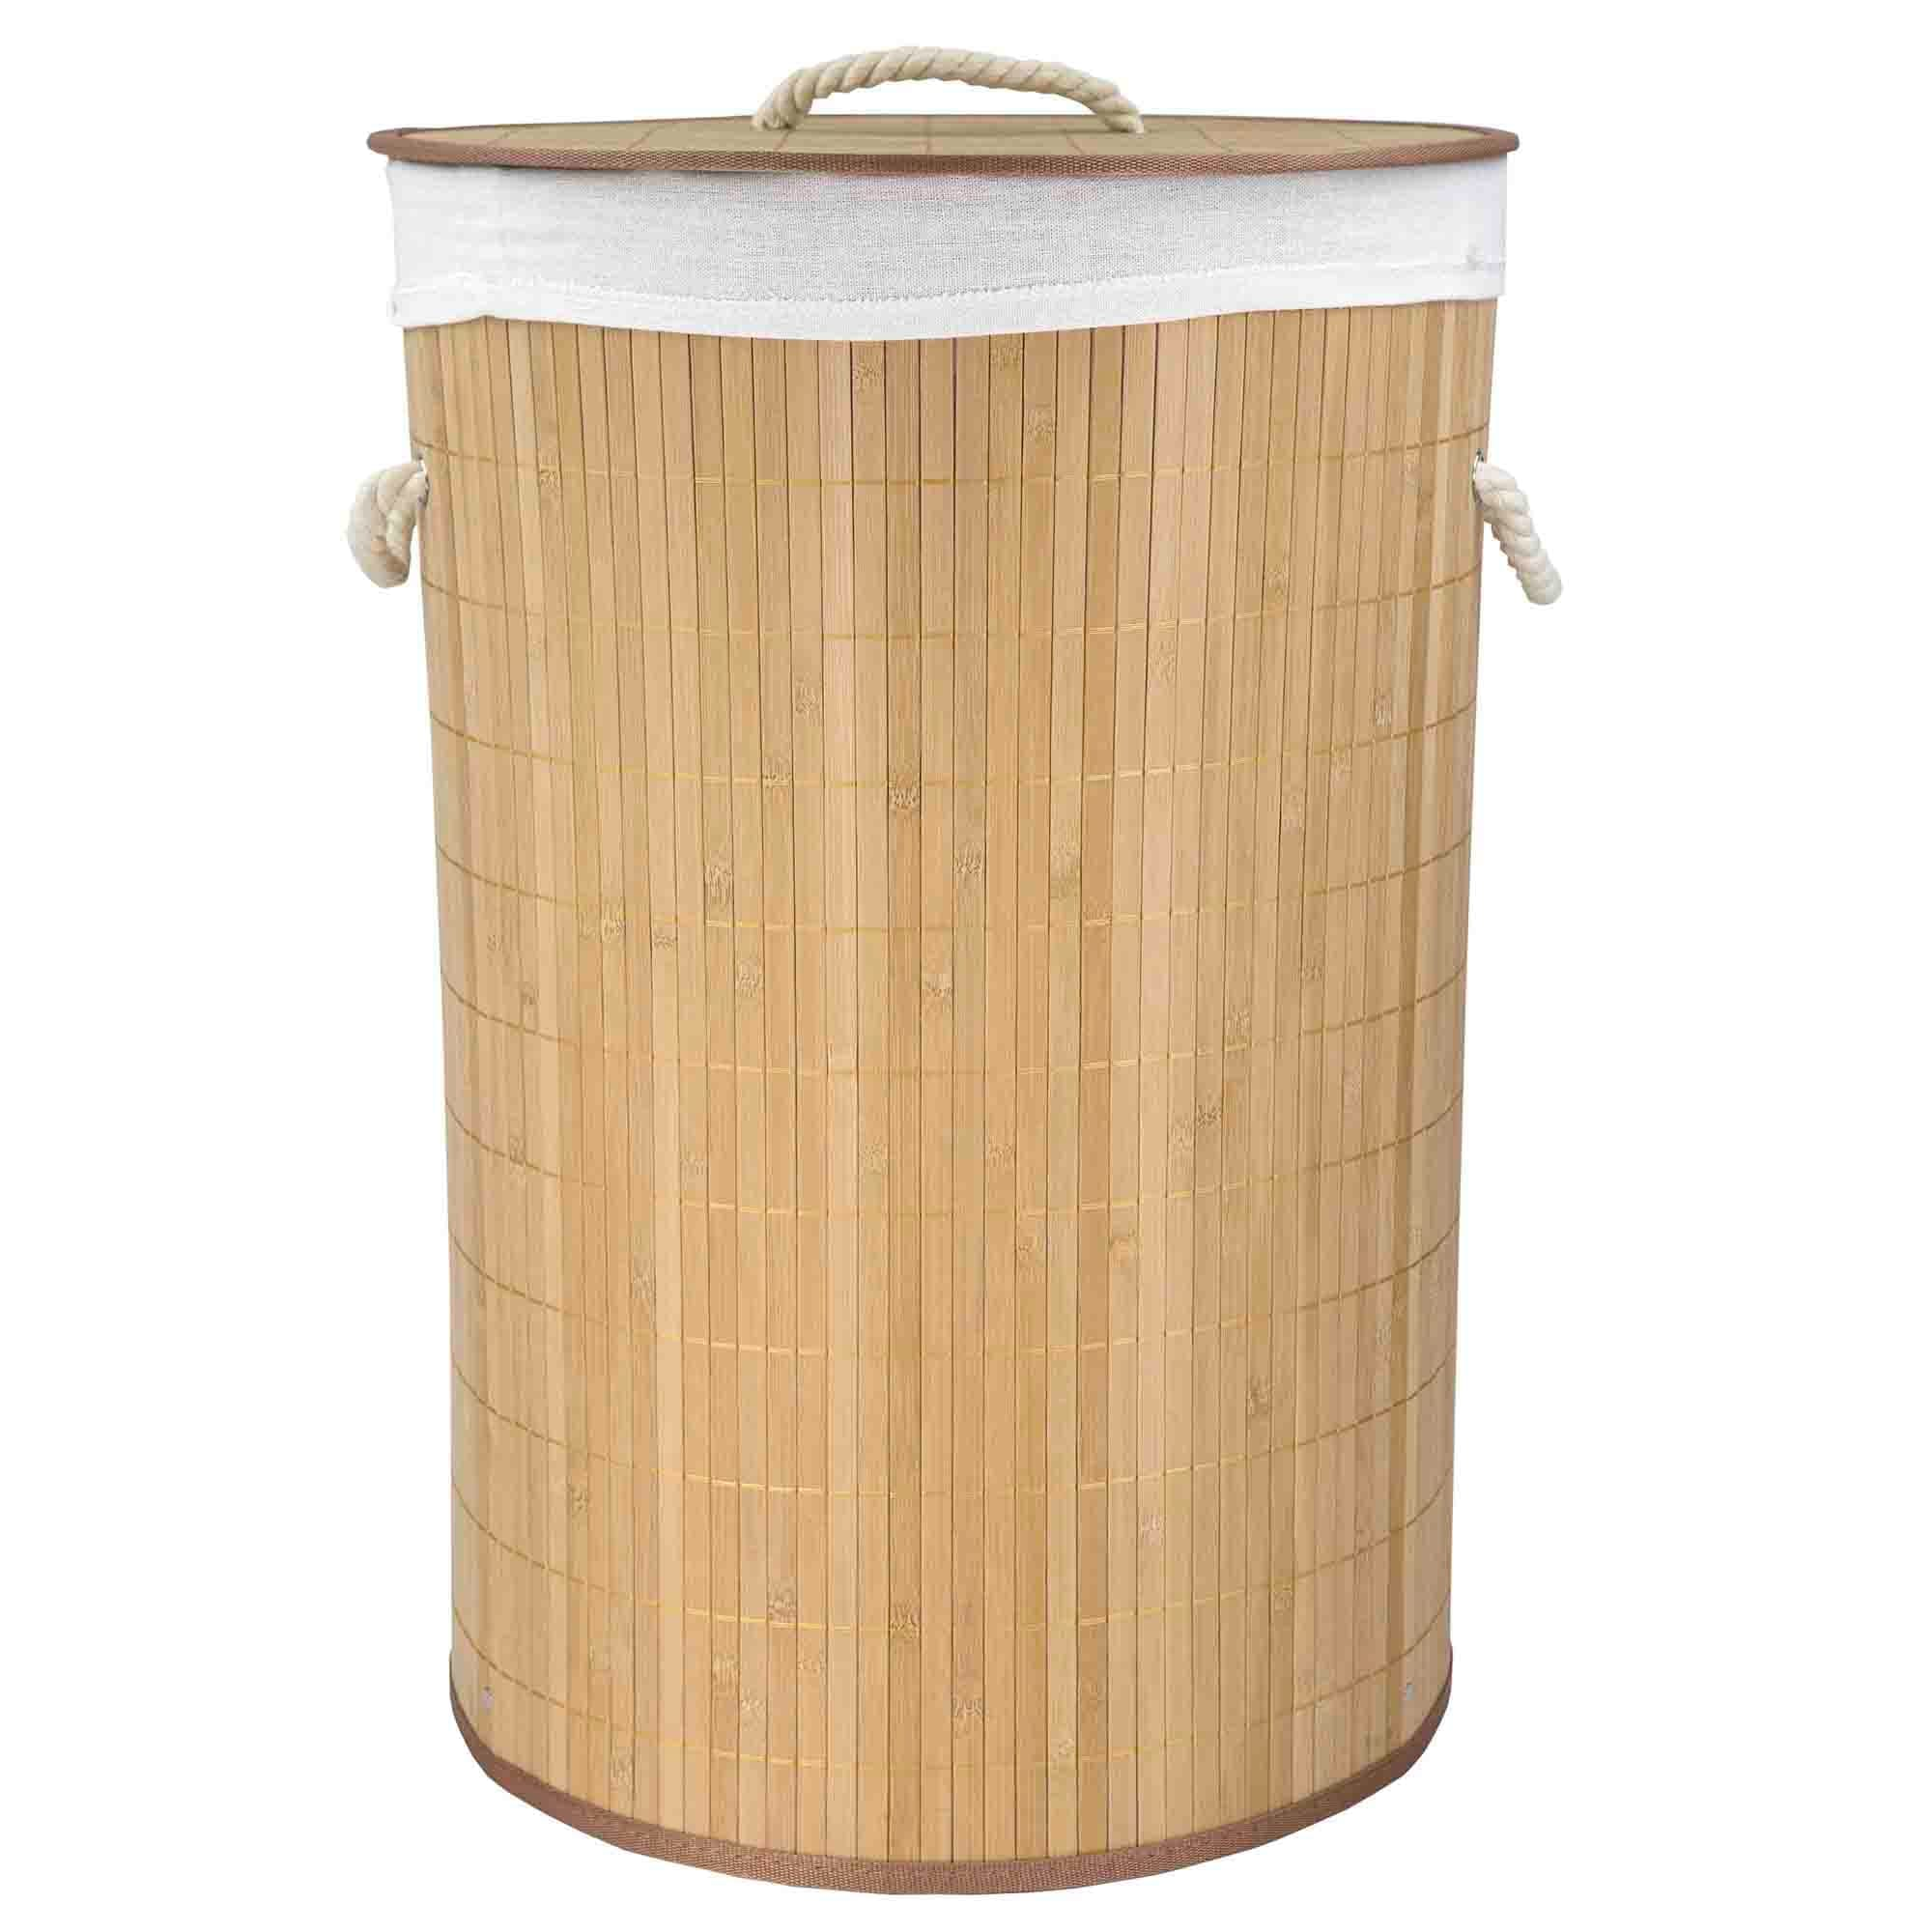 Round Foldable Bamboo Hamper, Natural